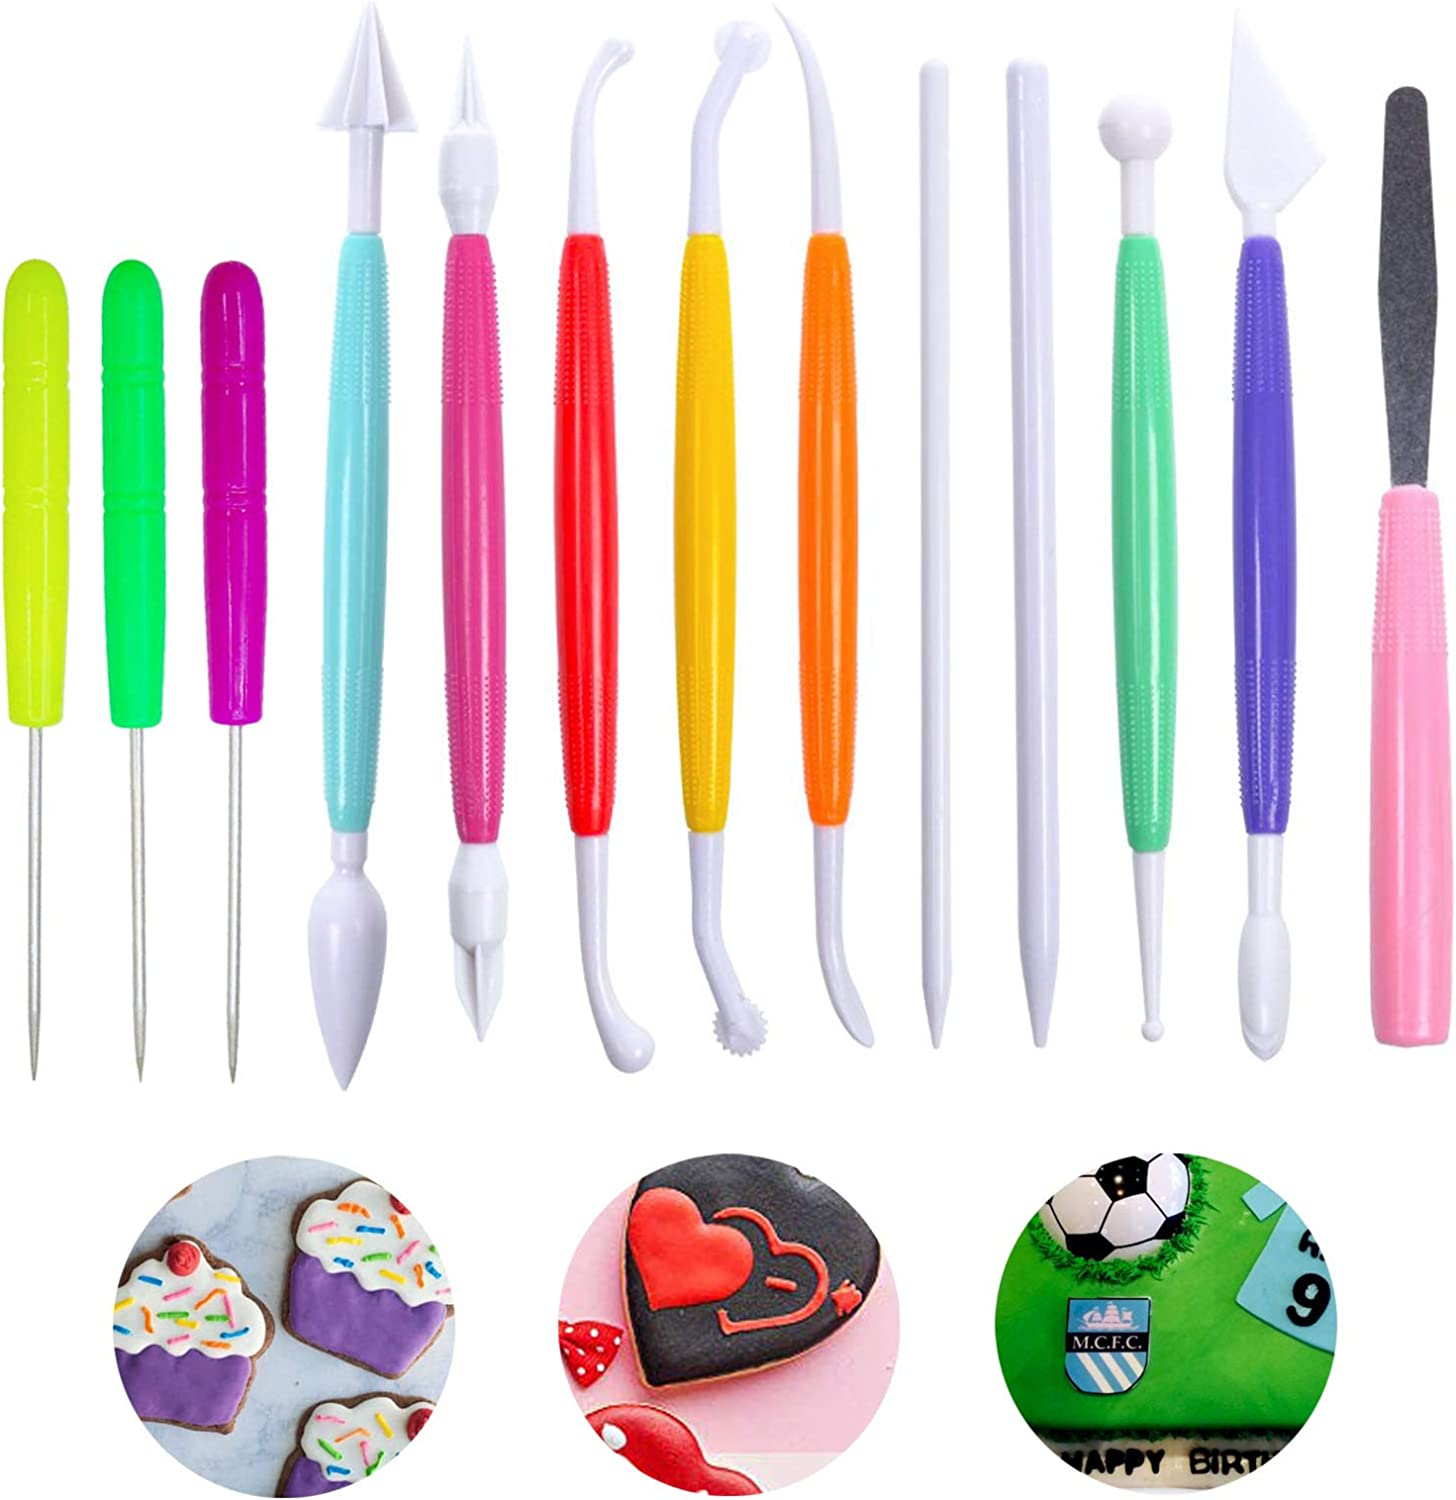 eKoi Pastry Cake Cookie Cupcake Clay Decorating Sculpting Modeling Pattern Scriber Pin Needle Cutter Pen Tools Kit Supplies for Baking Frosting Fondant SugarCraft Icing Paste DIY Art (15PC Set)